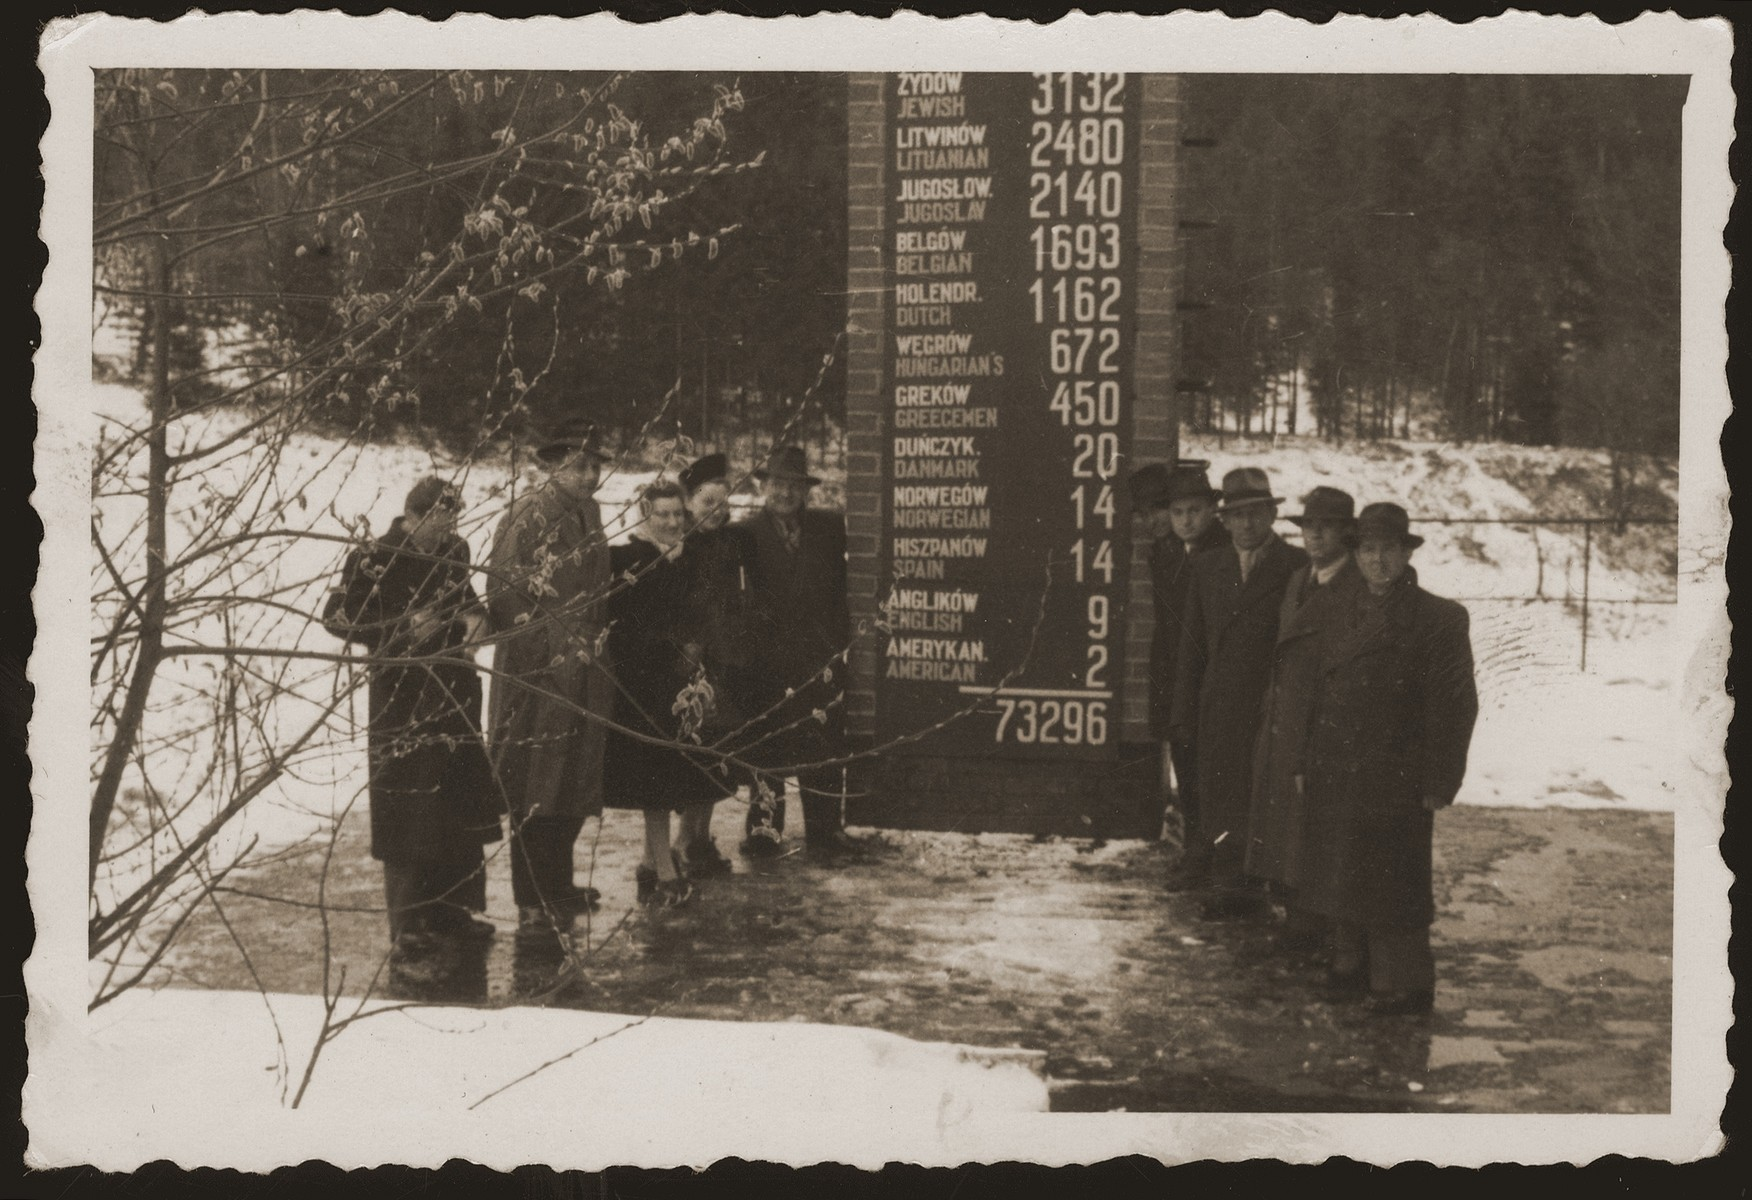 Jewish DPs living in the town of Weiden, Germany, make a pilgrimage to the Flossenbuerg concentration camp on the first or second anniversary of the liberation.    They pose on the roof of the crematorium, next to a memorial listing the number of those who perished in the camp according to nationality.  Among those pictured are Helen Chilewicz and Sala Weingarten and her father.